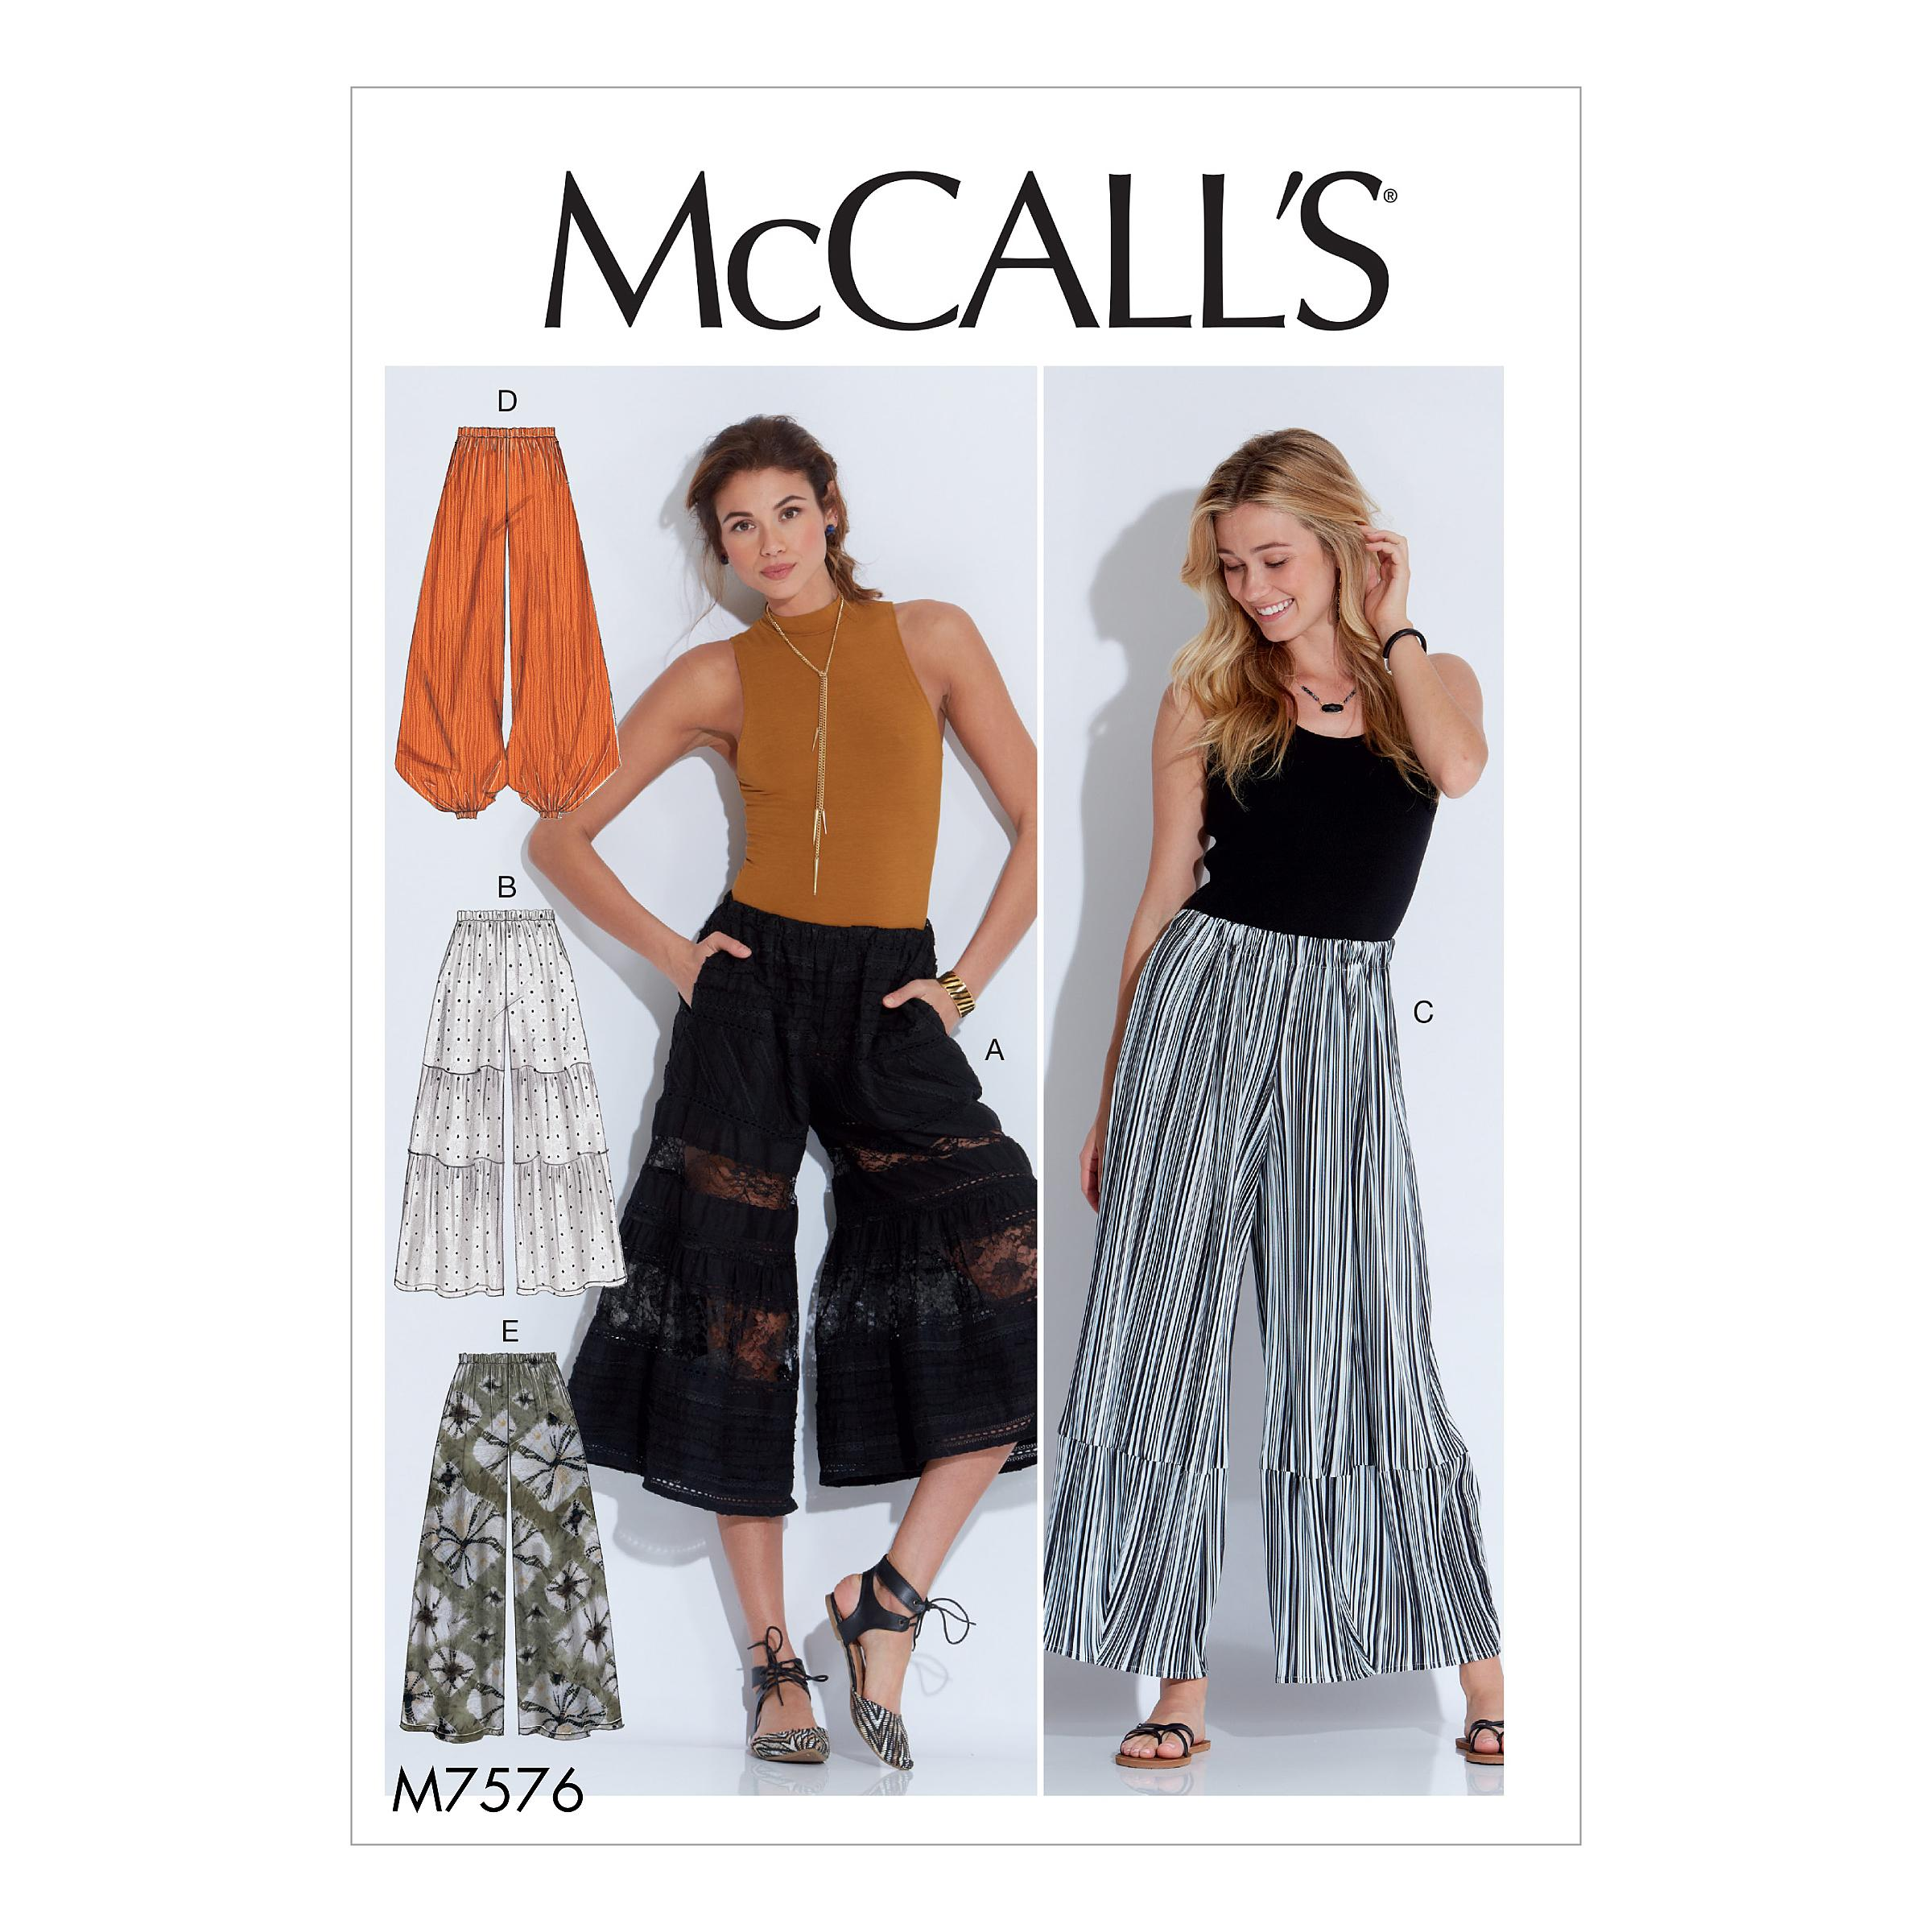 McCalls M7576 Misses Pants, Jumpsuits & Shorts